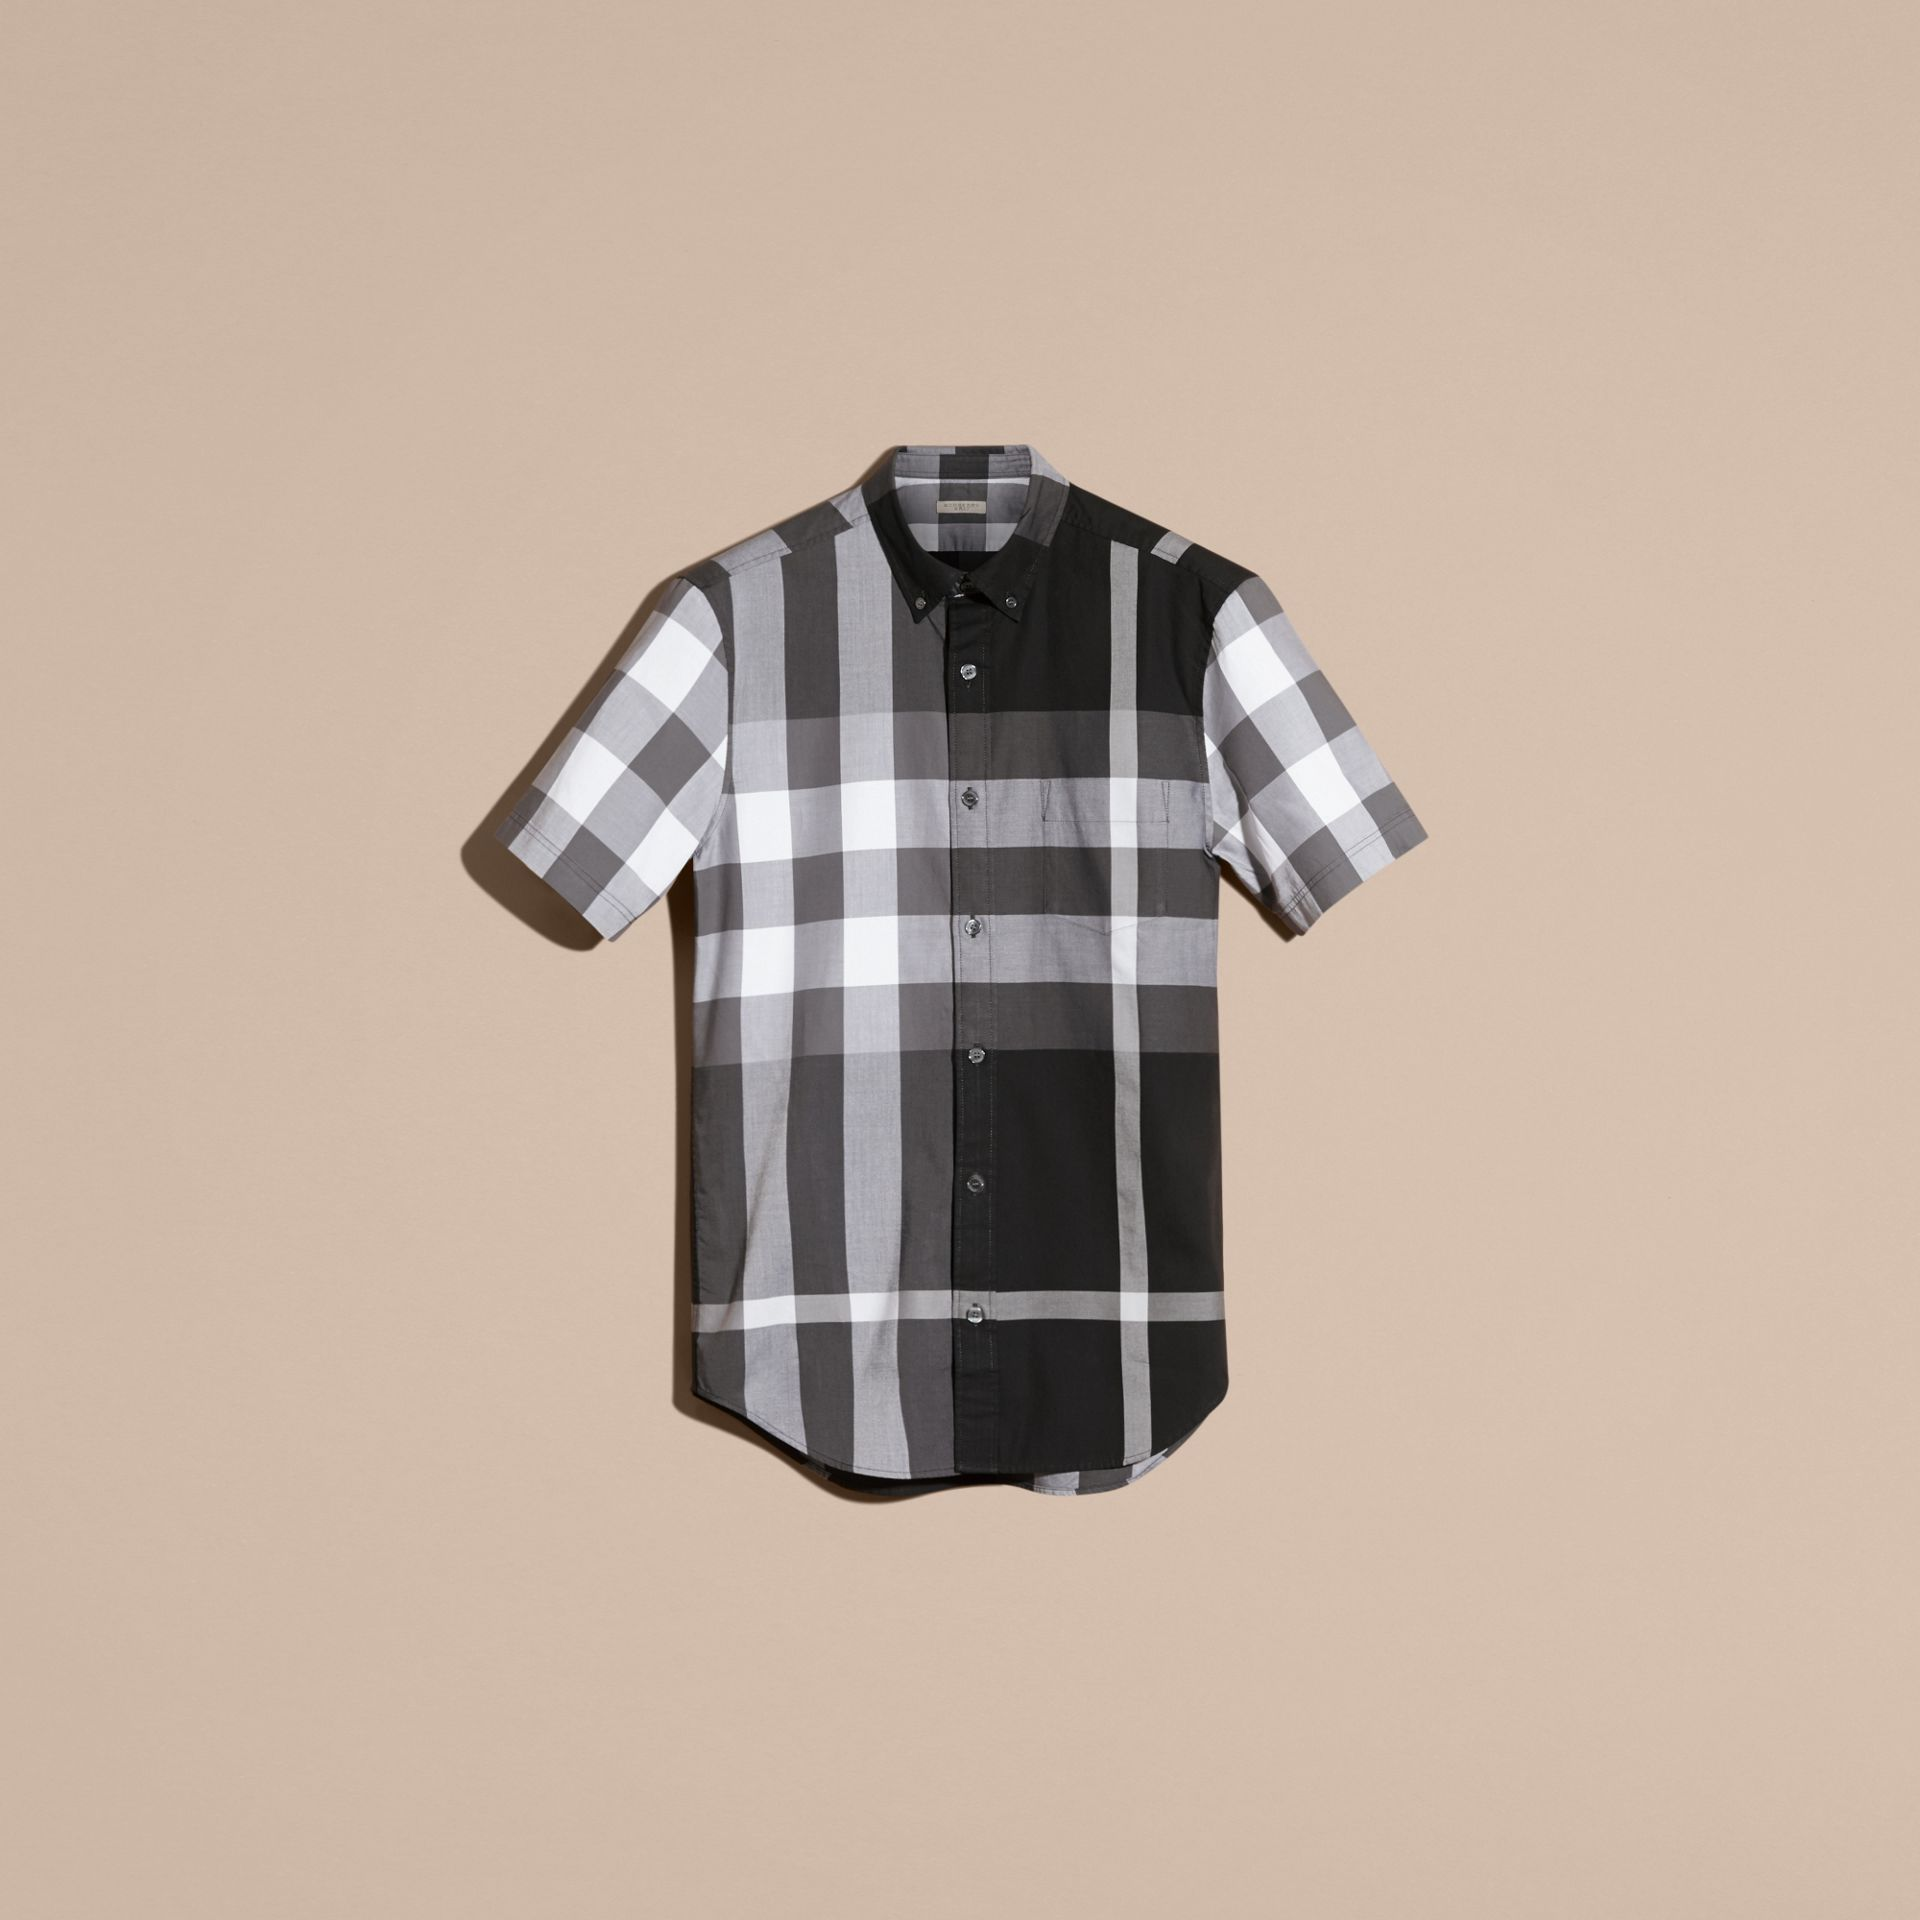 Black Short-sleeved Check Cotton Shirt Black - gallery image 4